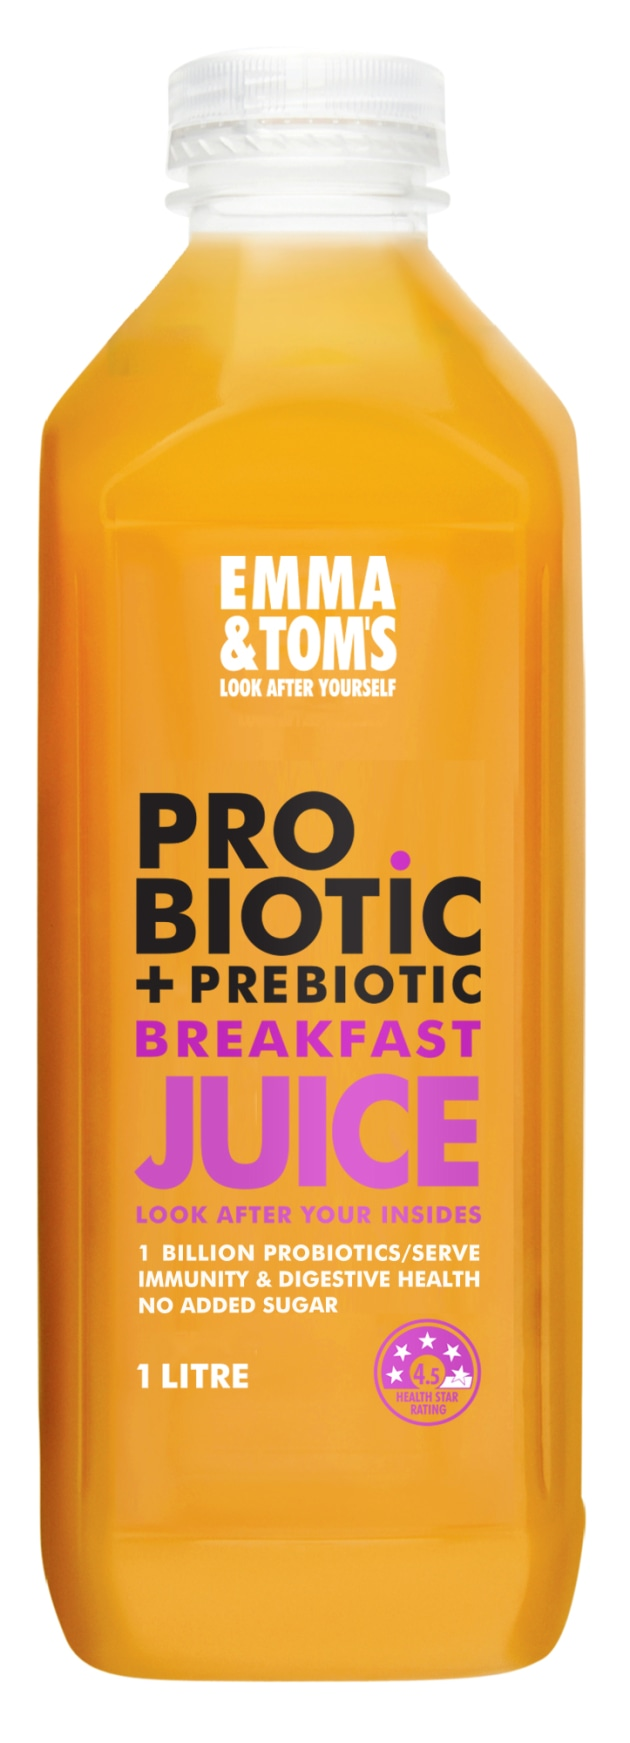 Emma & Tom use Chr. Hansen LC-431 in its probiotic juices.